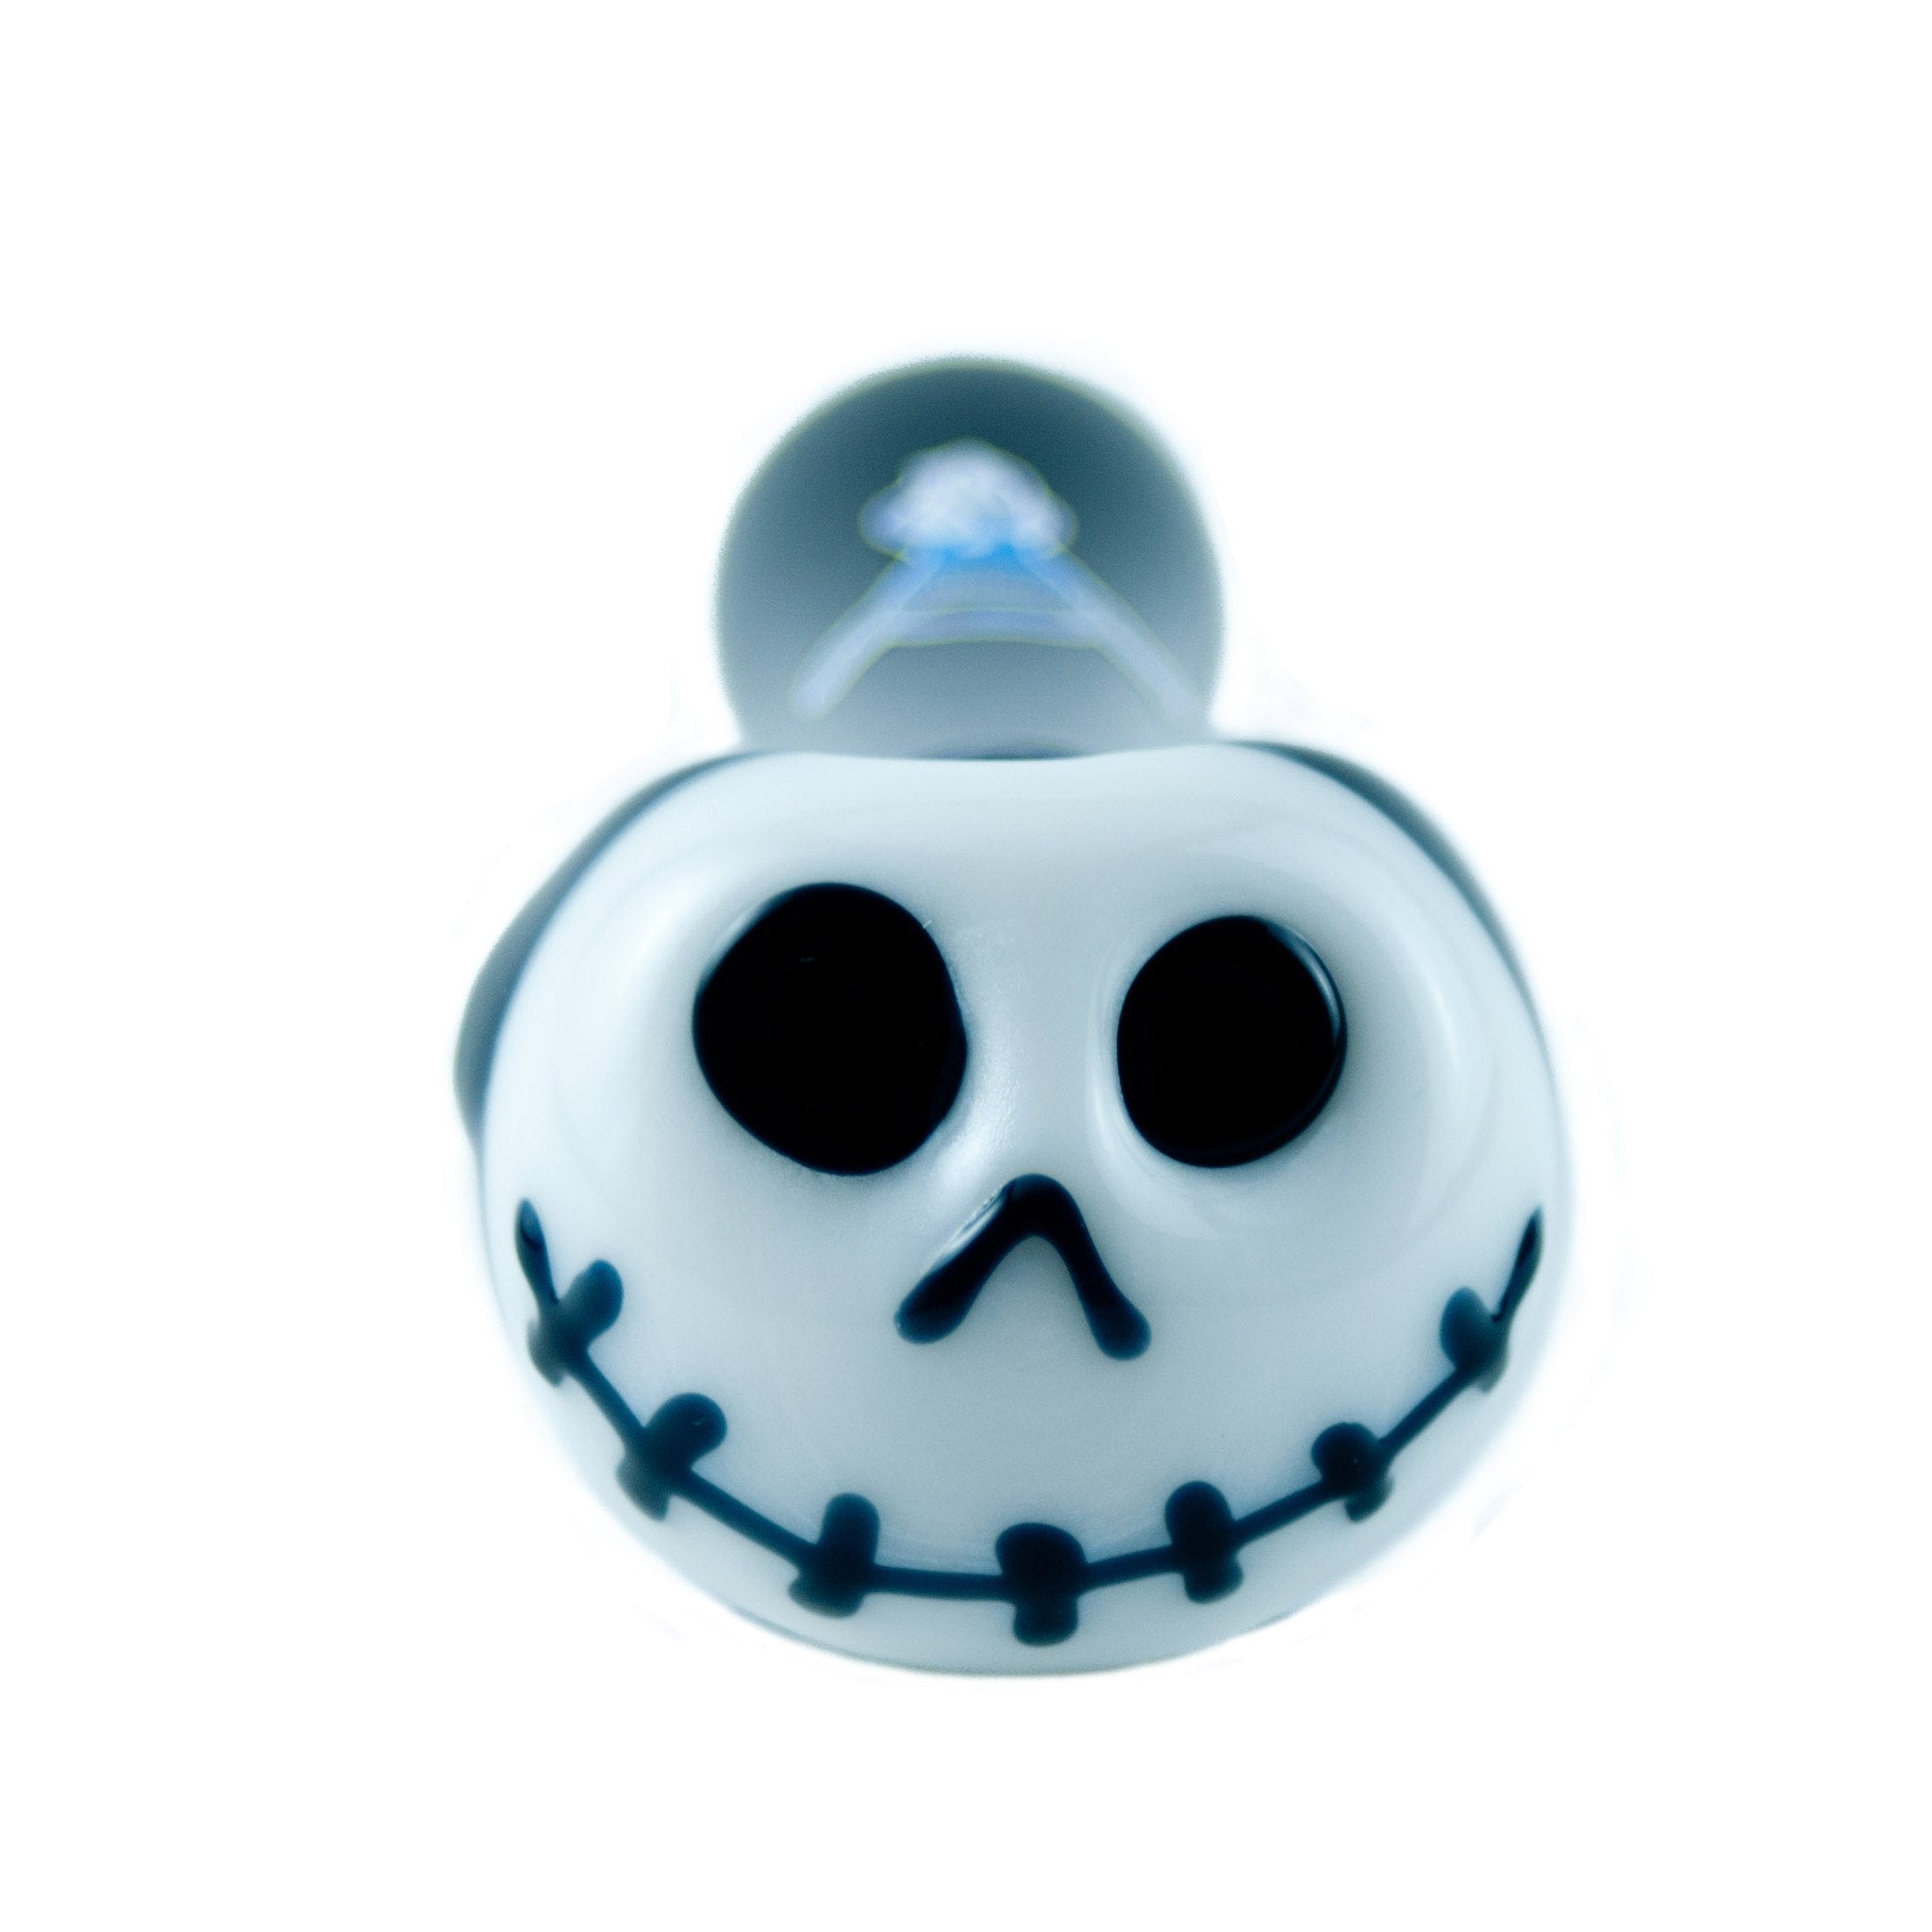 Chameleon Glass - Skellington Pipe Glow in the Dark